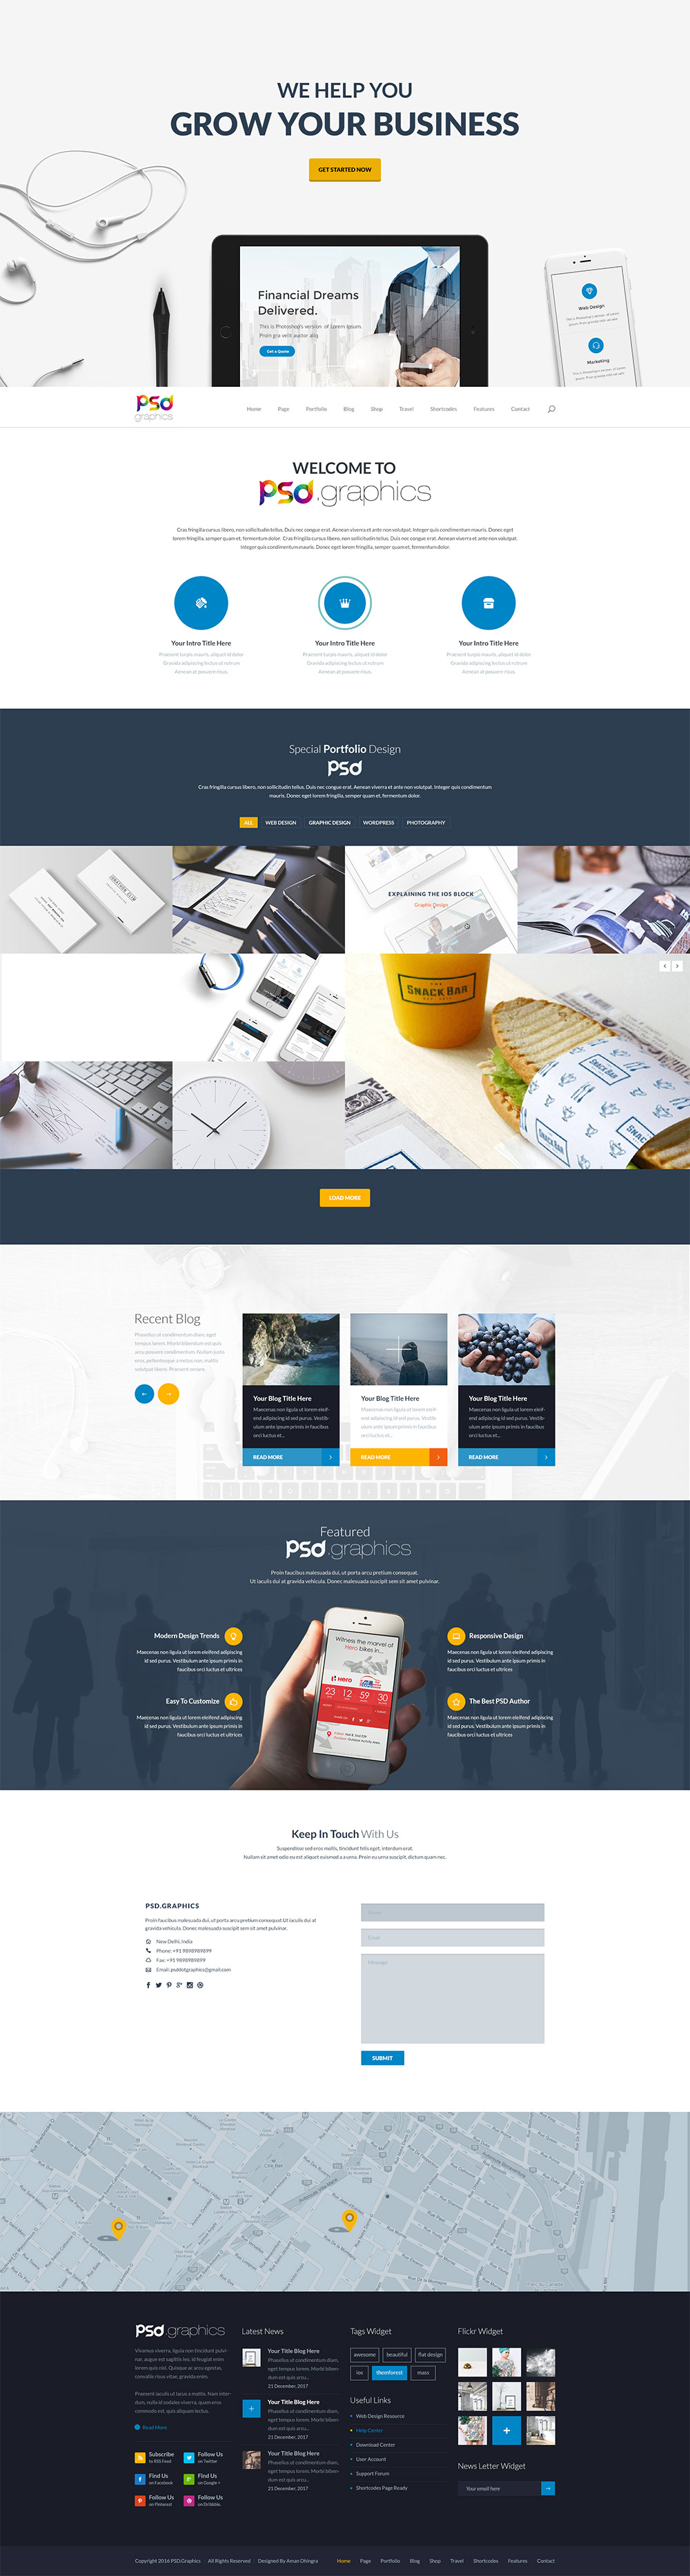 Professional business website template free psd psd graphics professional business website template free psd cheaphphosting Gallery